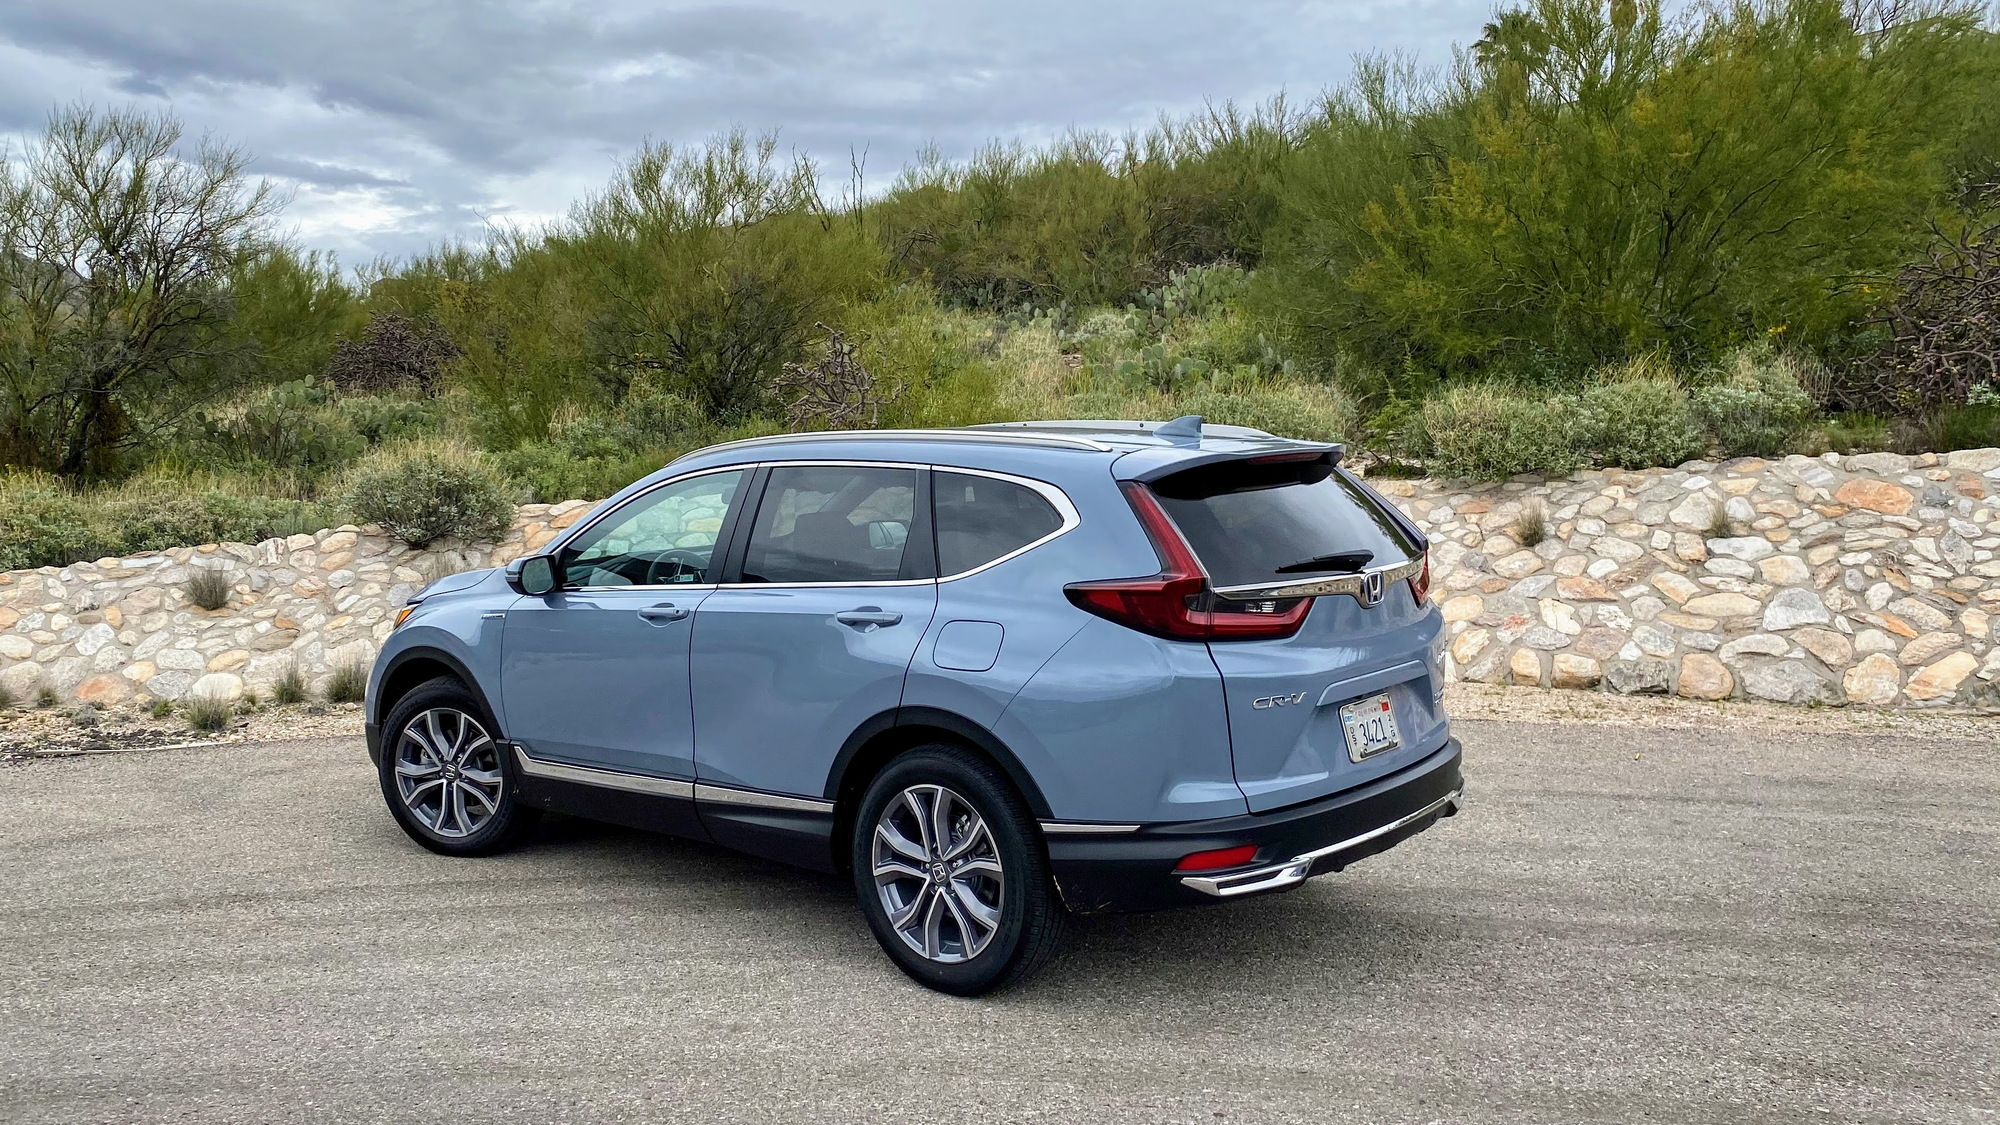 2020 Honda CR-V Hybrid  -  First Drive, March 2020